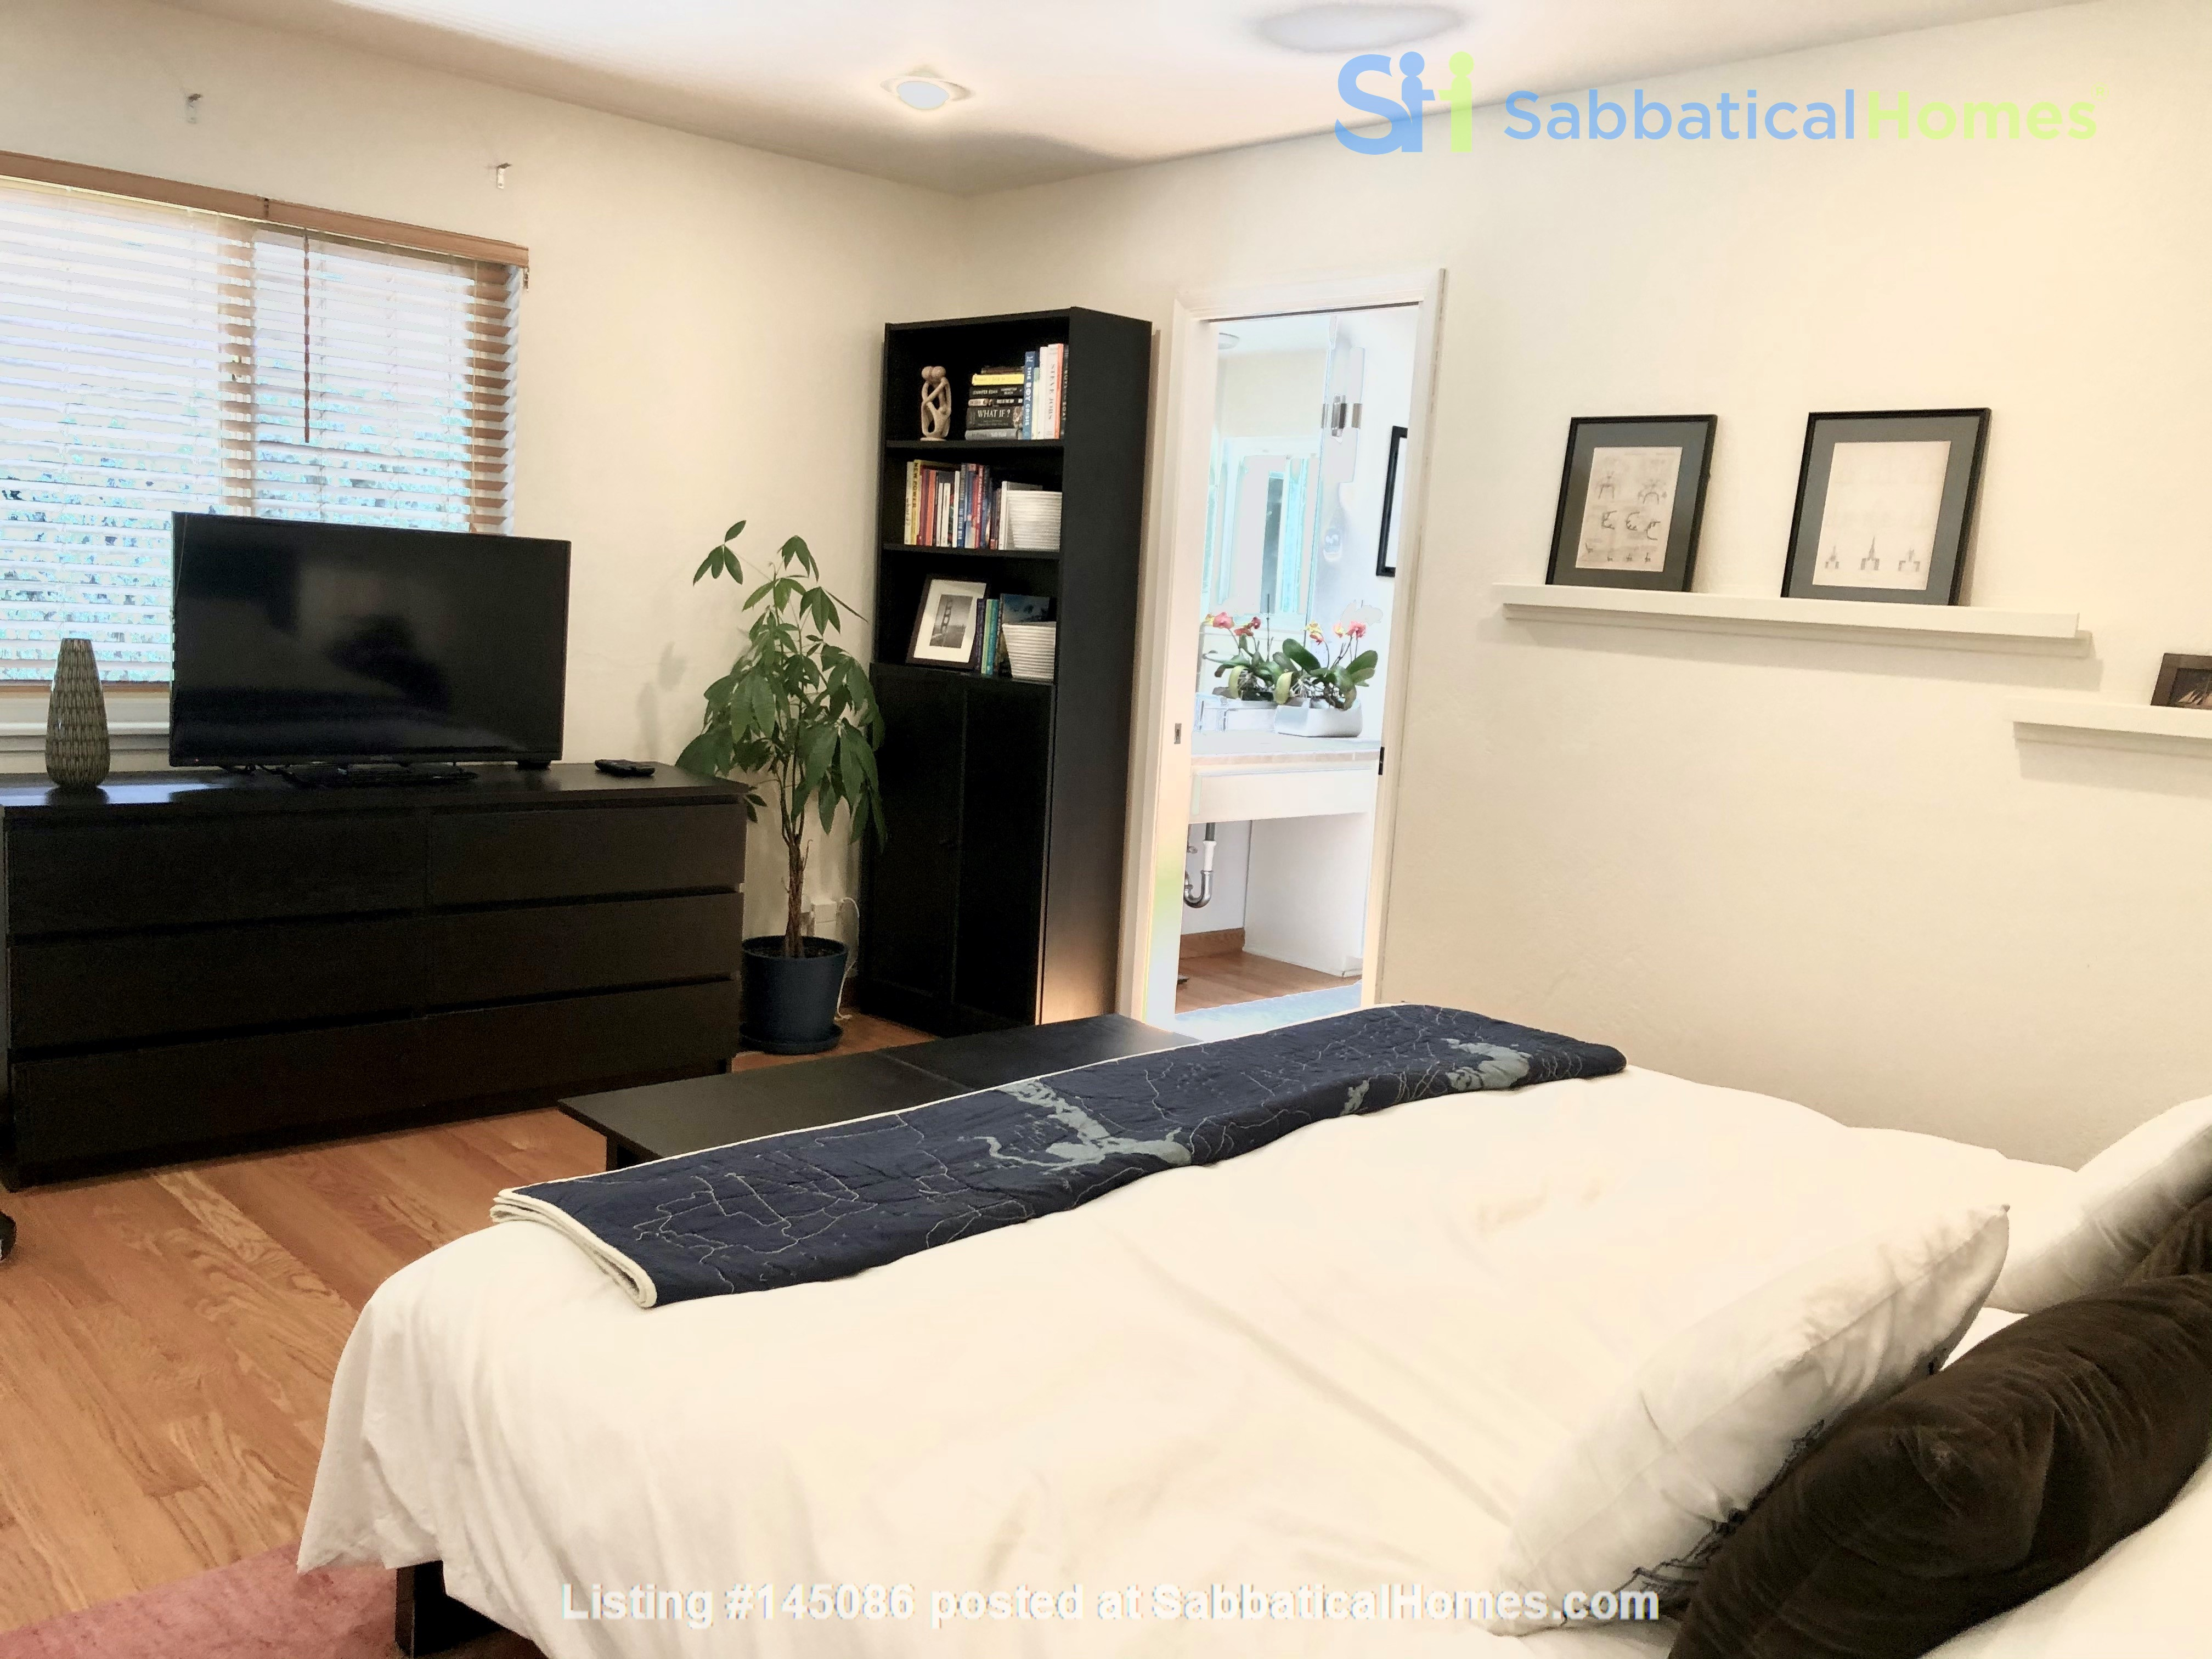 Spacious, Level-In, Quite Home for year lease in the Oakland Hills, CA Home Rental in Oakland, California, United States 8